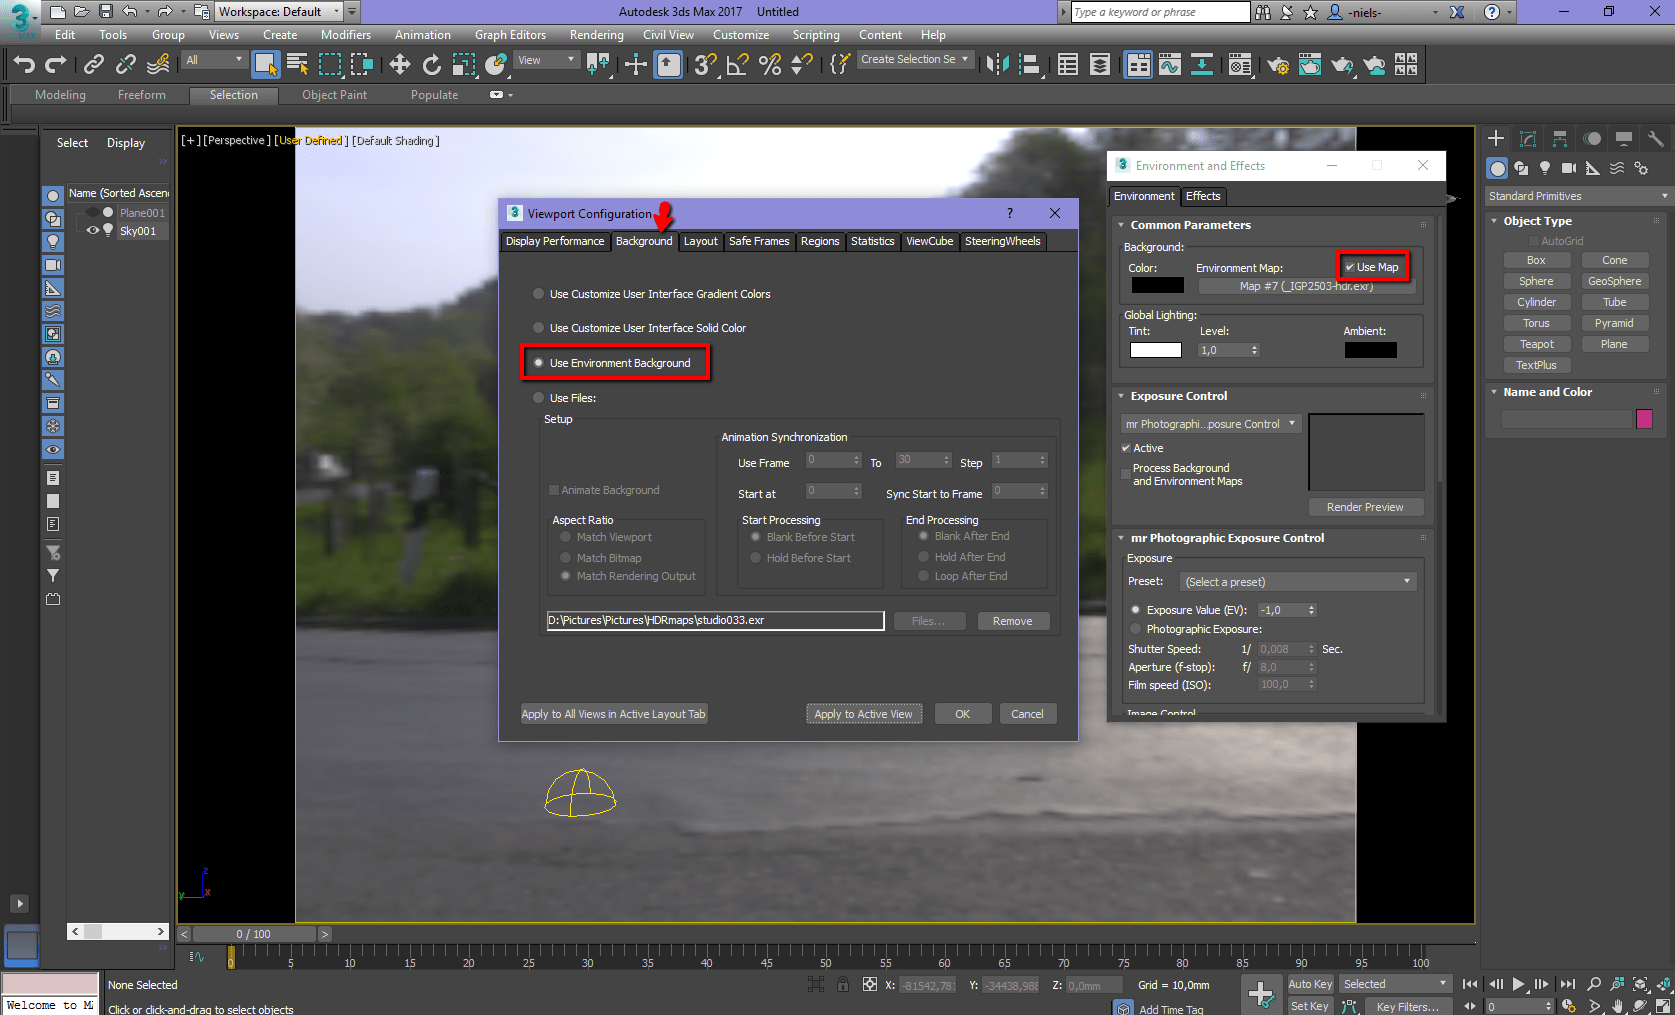 HDR in 3ds max 2017 - Autodesk Community